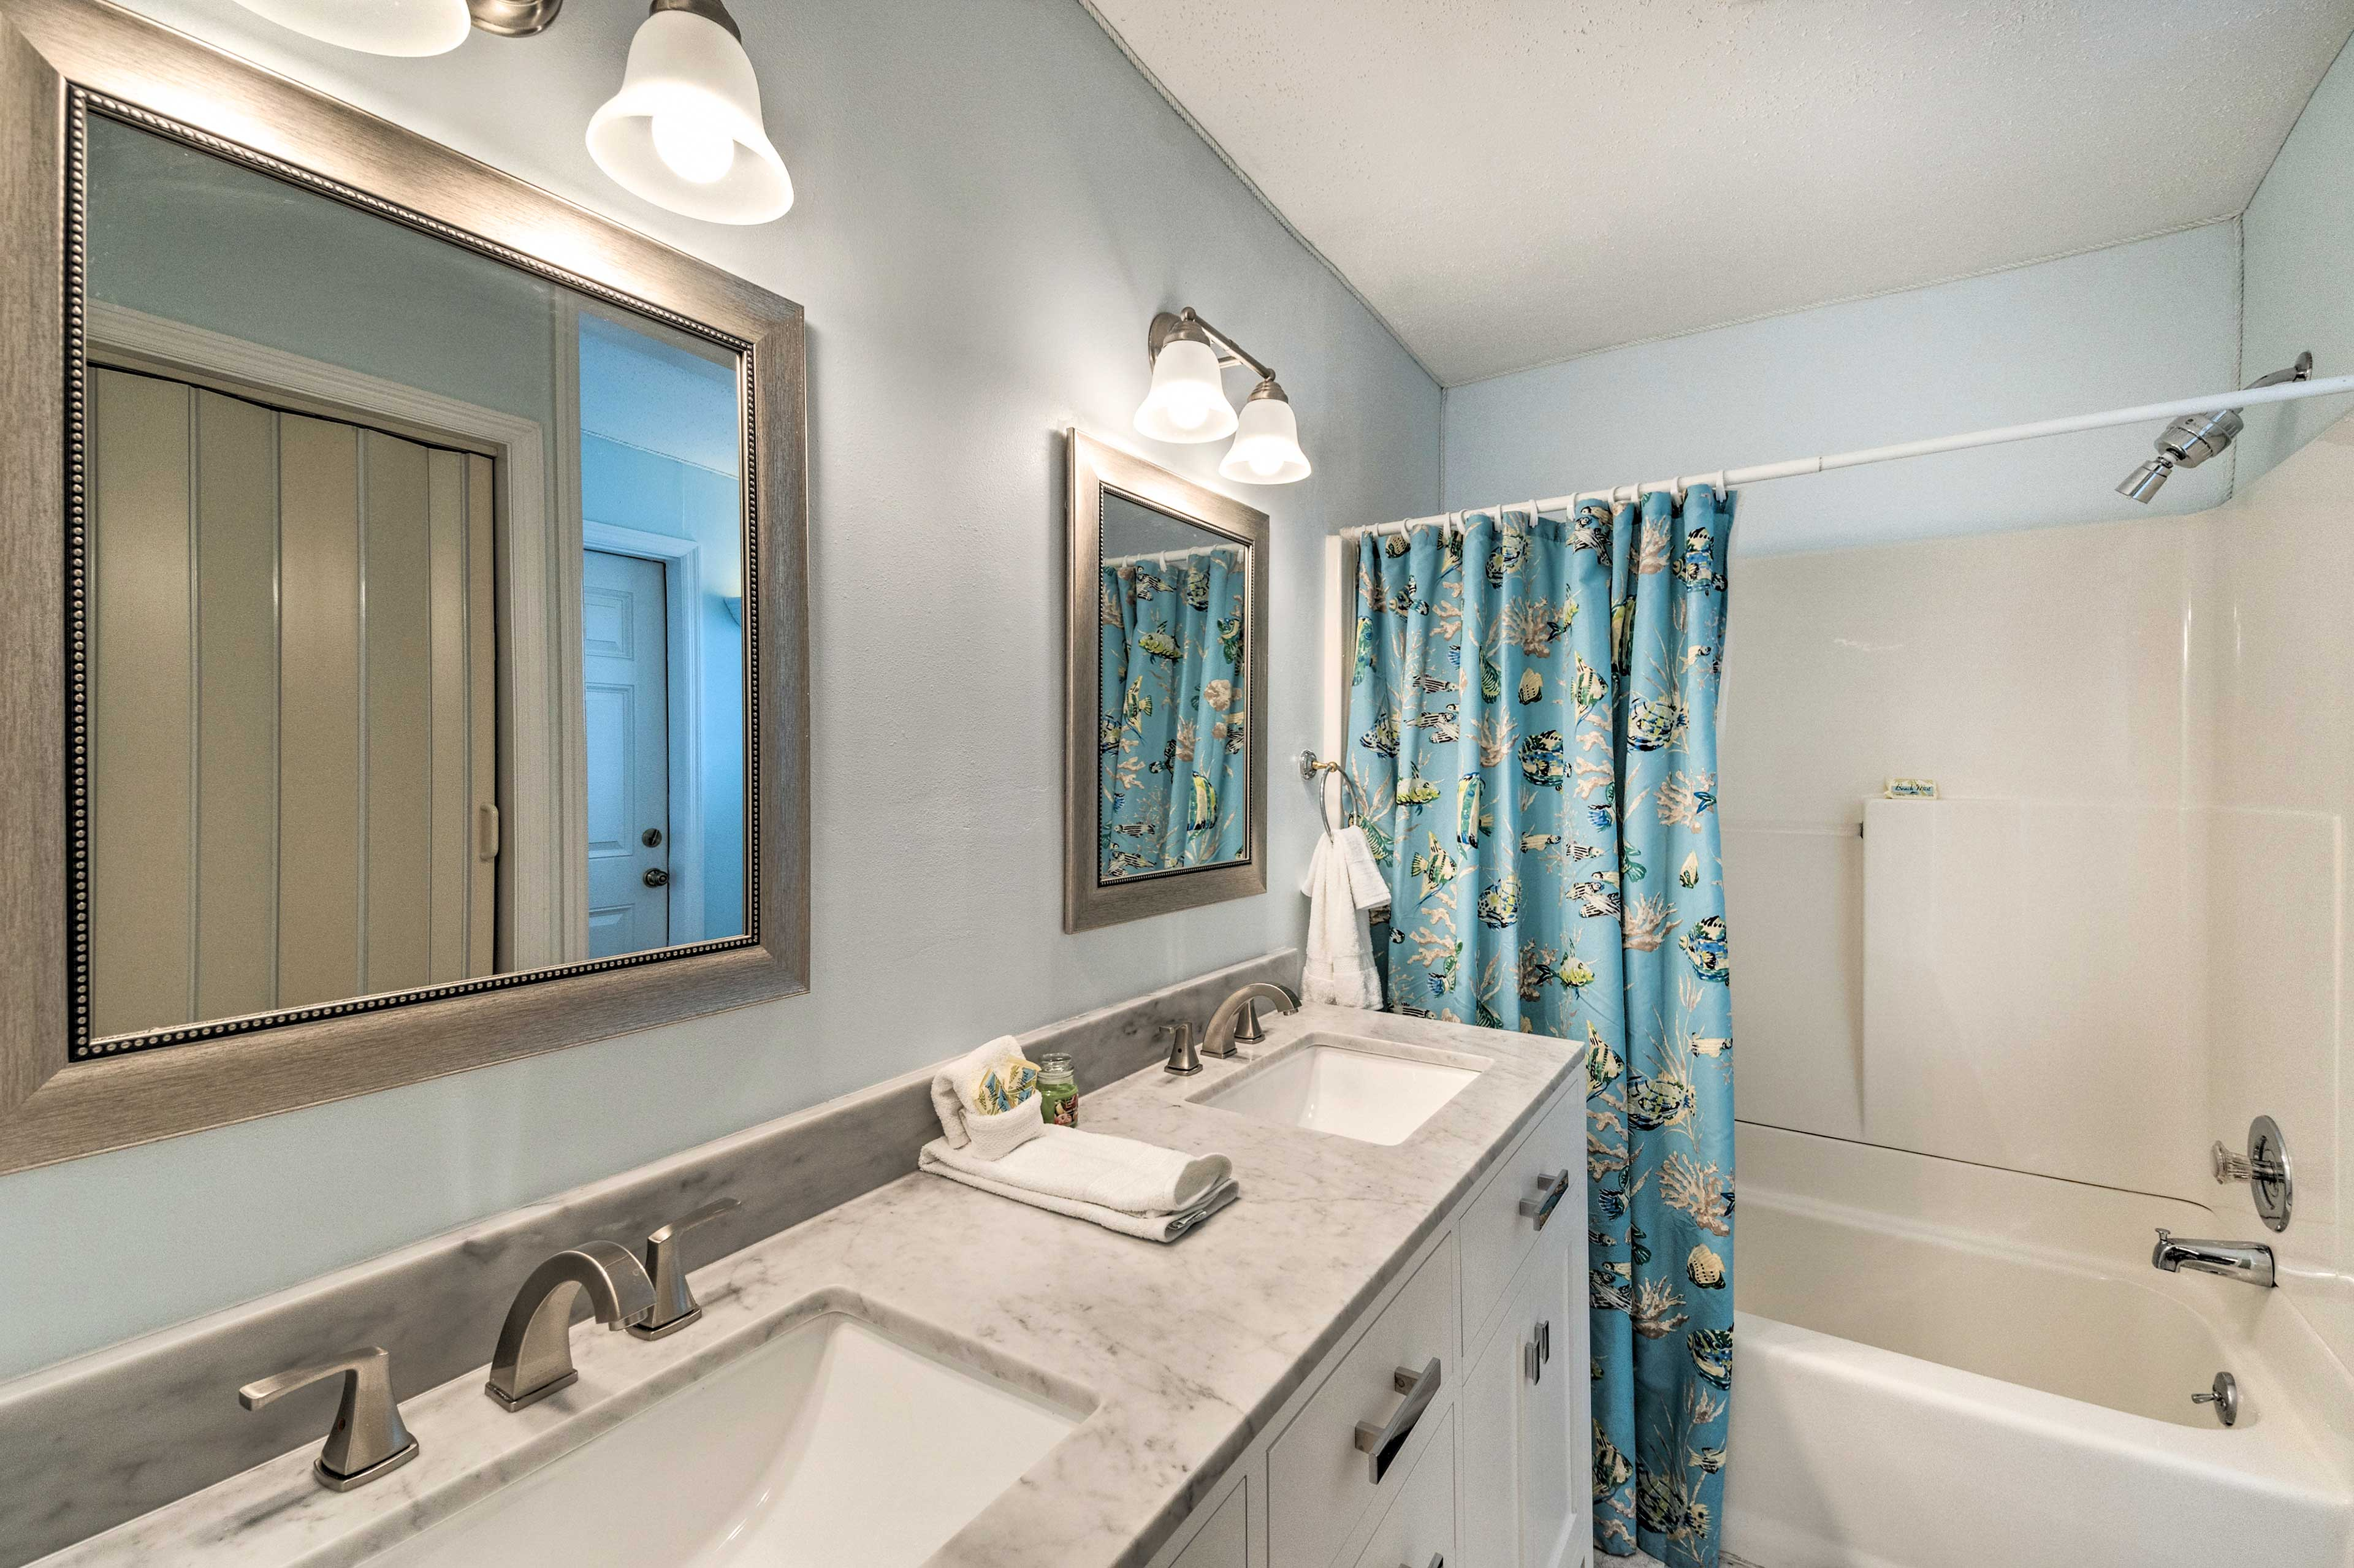 Dual sinks and a shower/tub combo highlight the master bath.